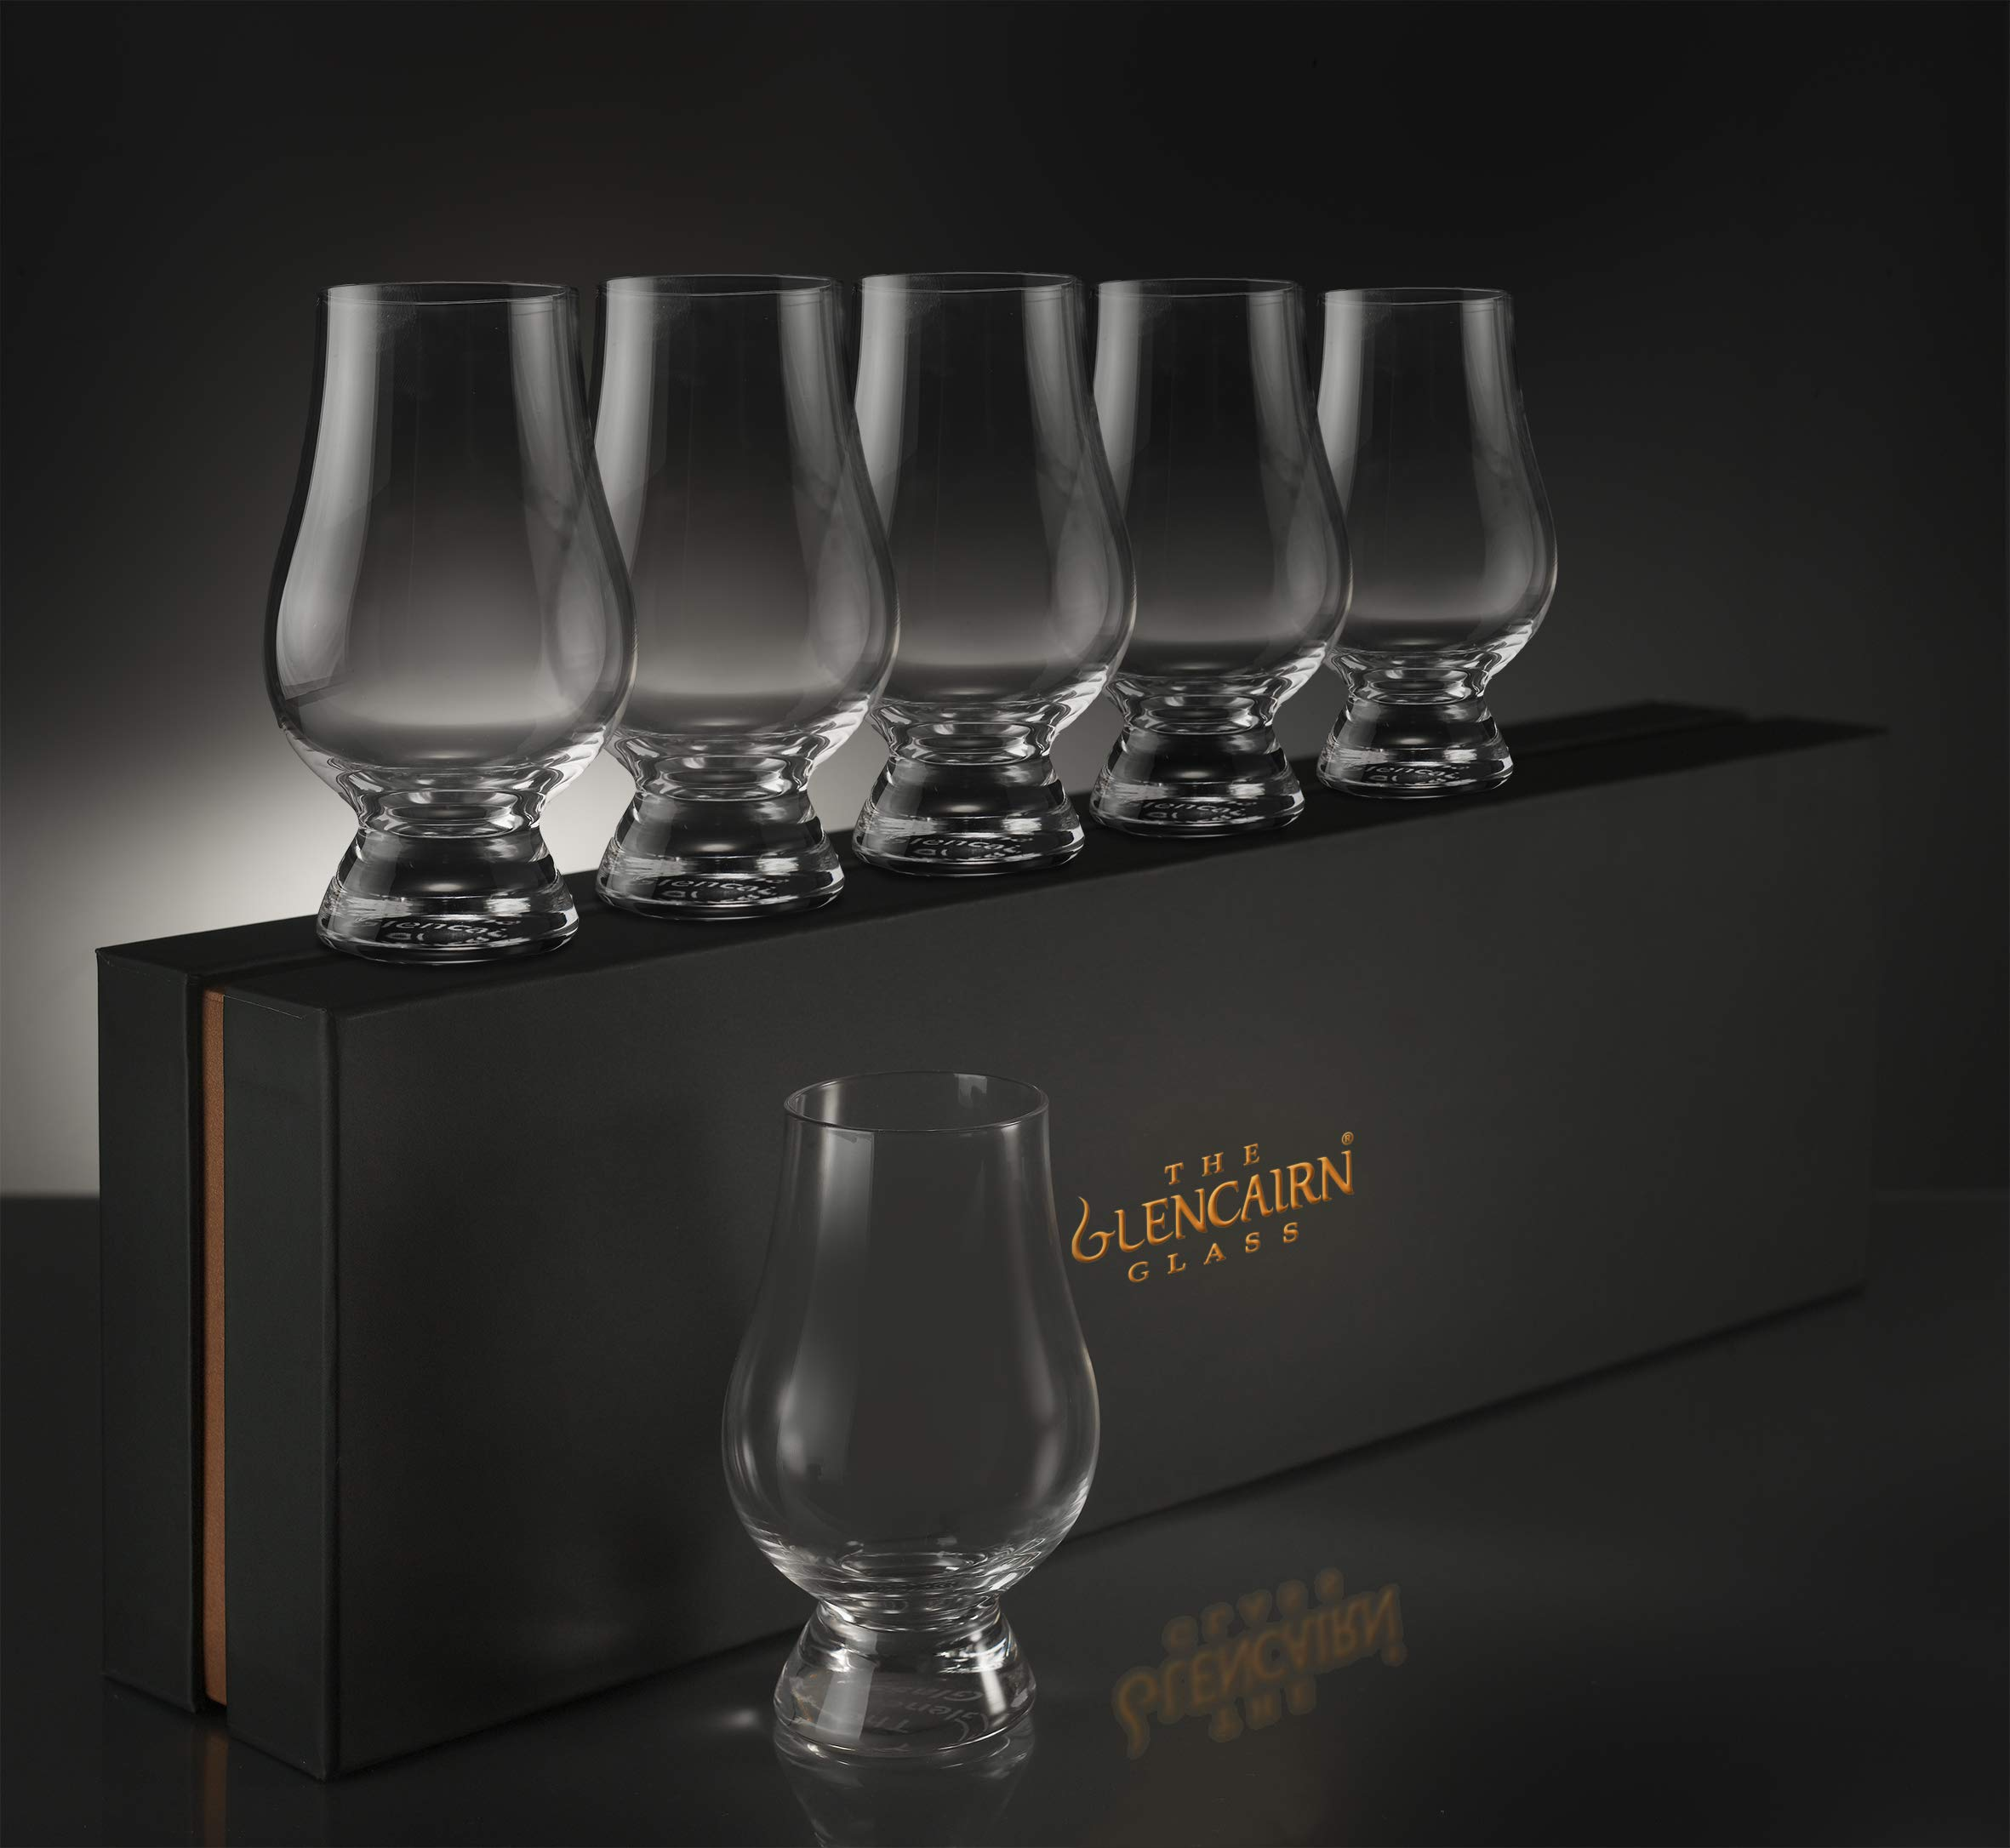 Glencairn Whiskey Glass Set of 6 in Deluxe Velvet Gift Box by Glencairn (Image #1)